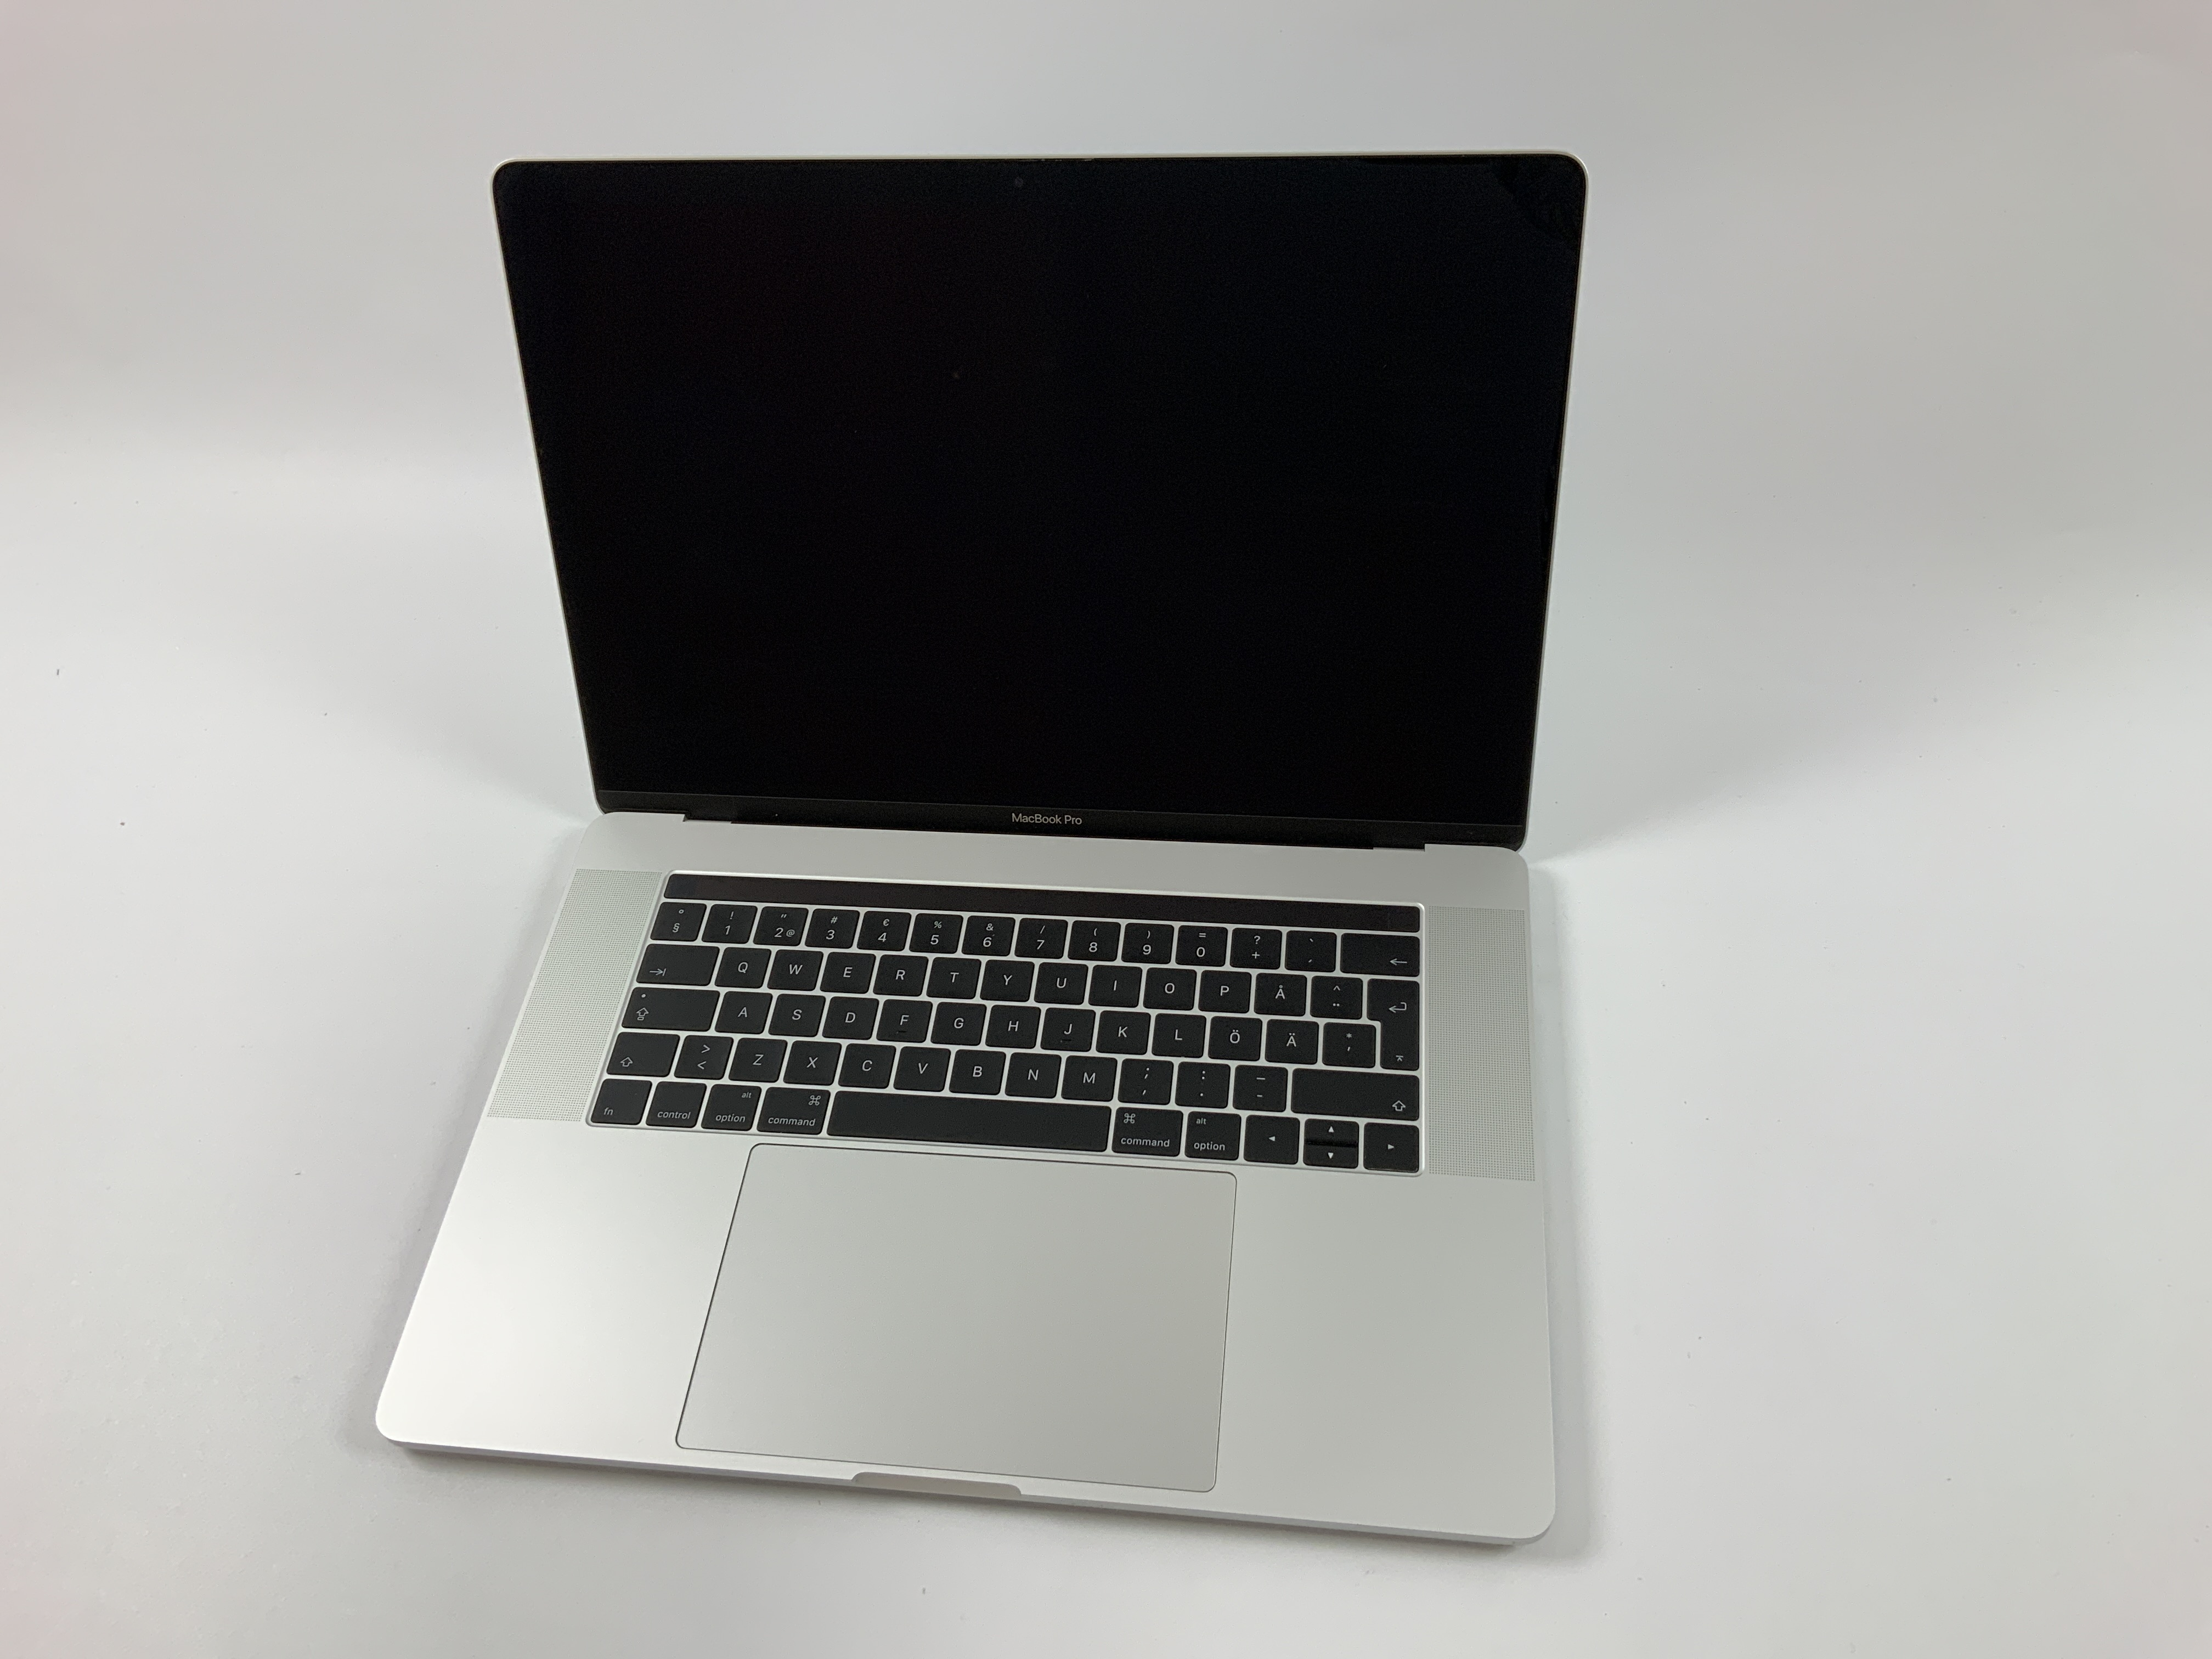 "MacBook Pro 15"" Touch Bar Late 2016 (Intel Quad-Core i7 2.6 GHz 16 GB RAM 256 GB SSD), Silver, Intel Quad-Core i7 2.6 GHz, 16 GB RAM, 256 GB SSD, Bild 1"